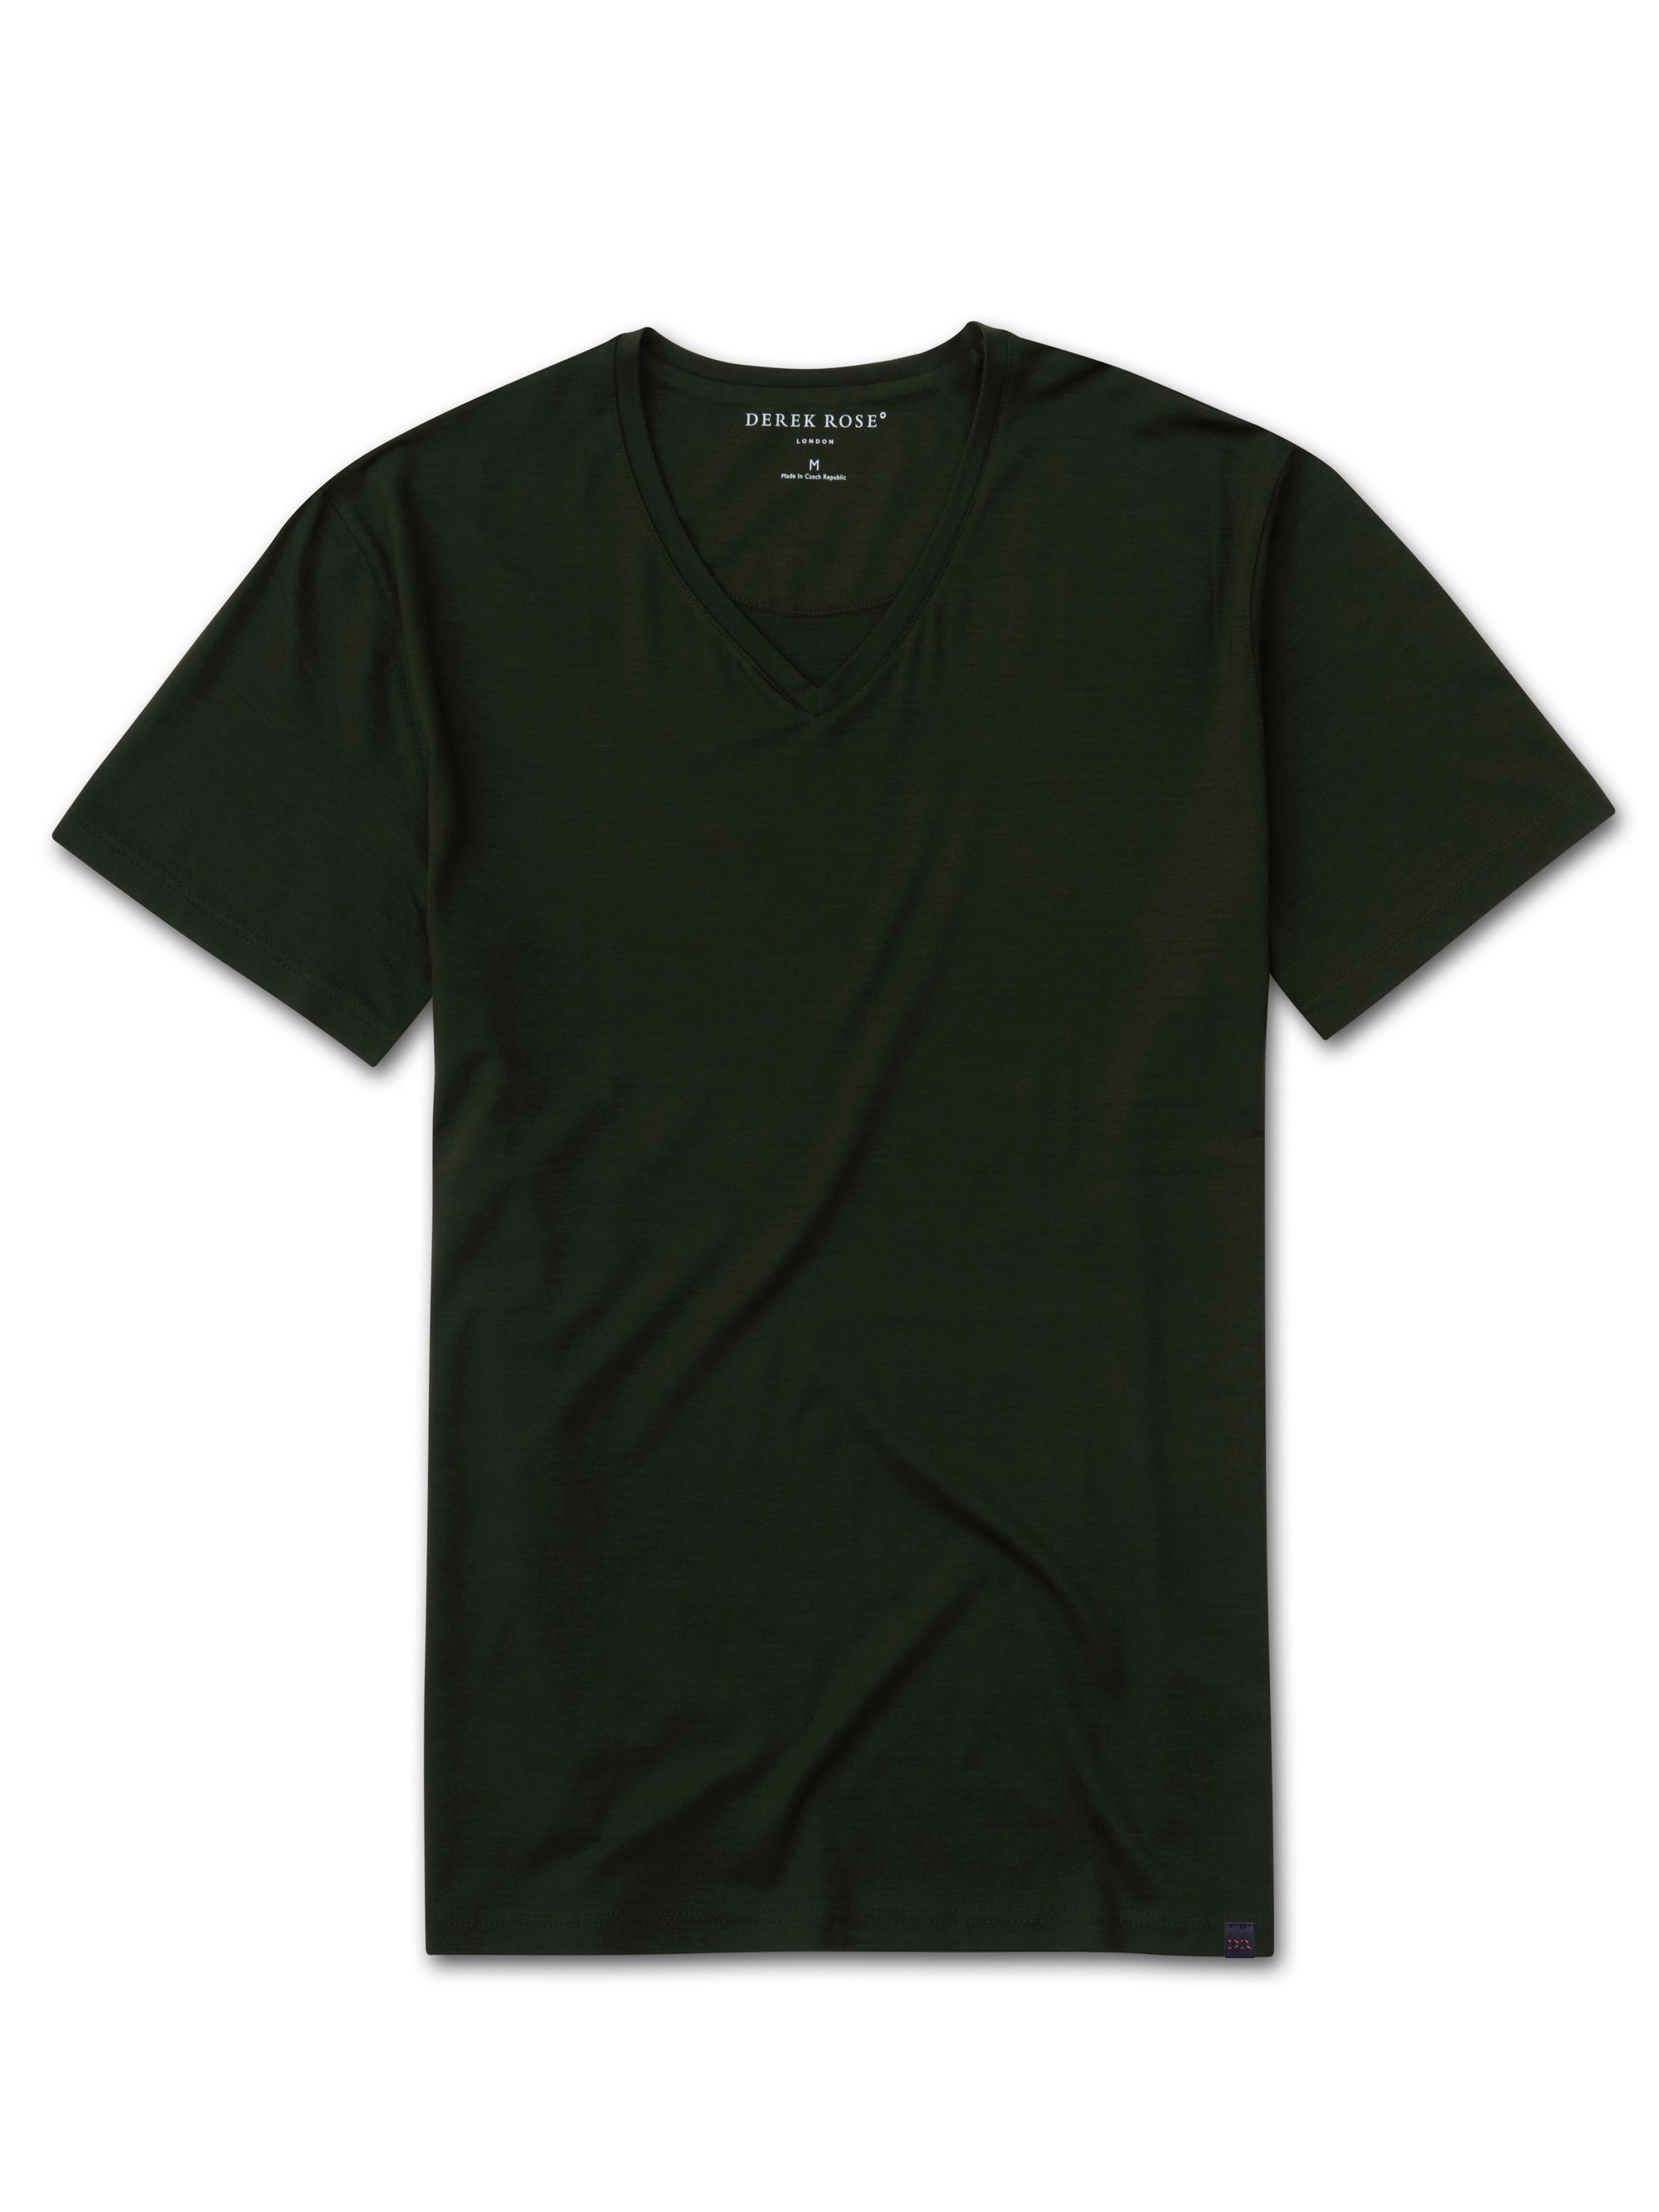 Men's Short Sleeve V-Neck T-Shirt Basel 9 Micro Modal Stretch Green